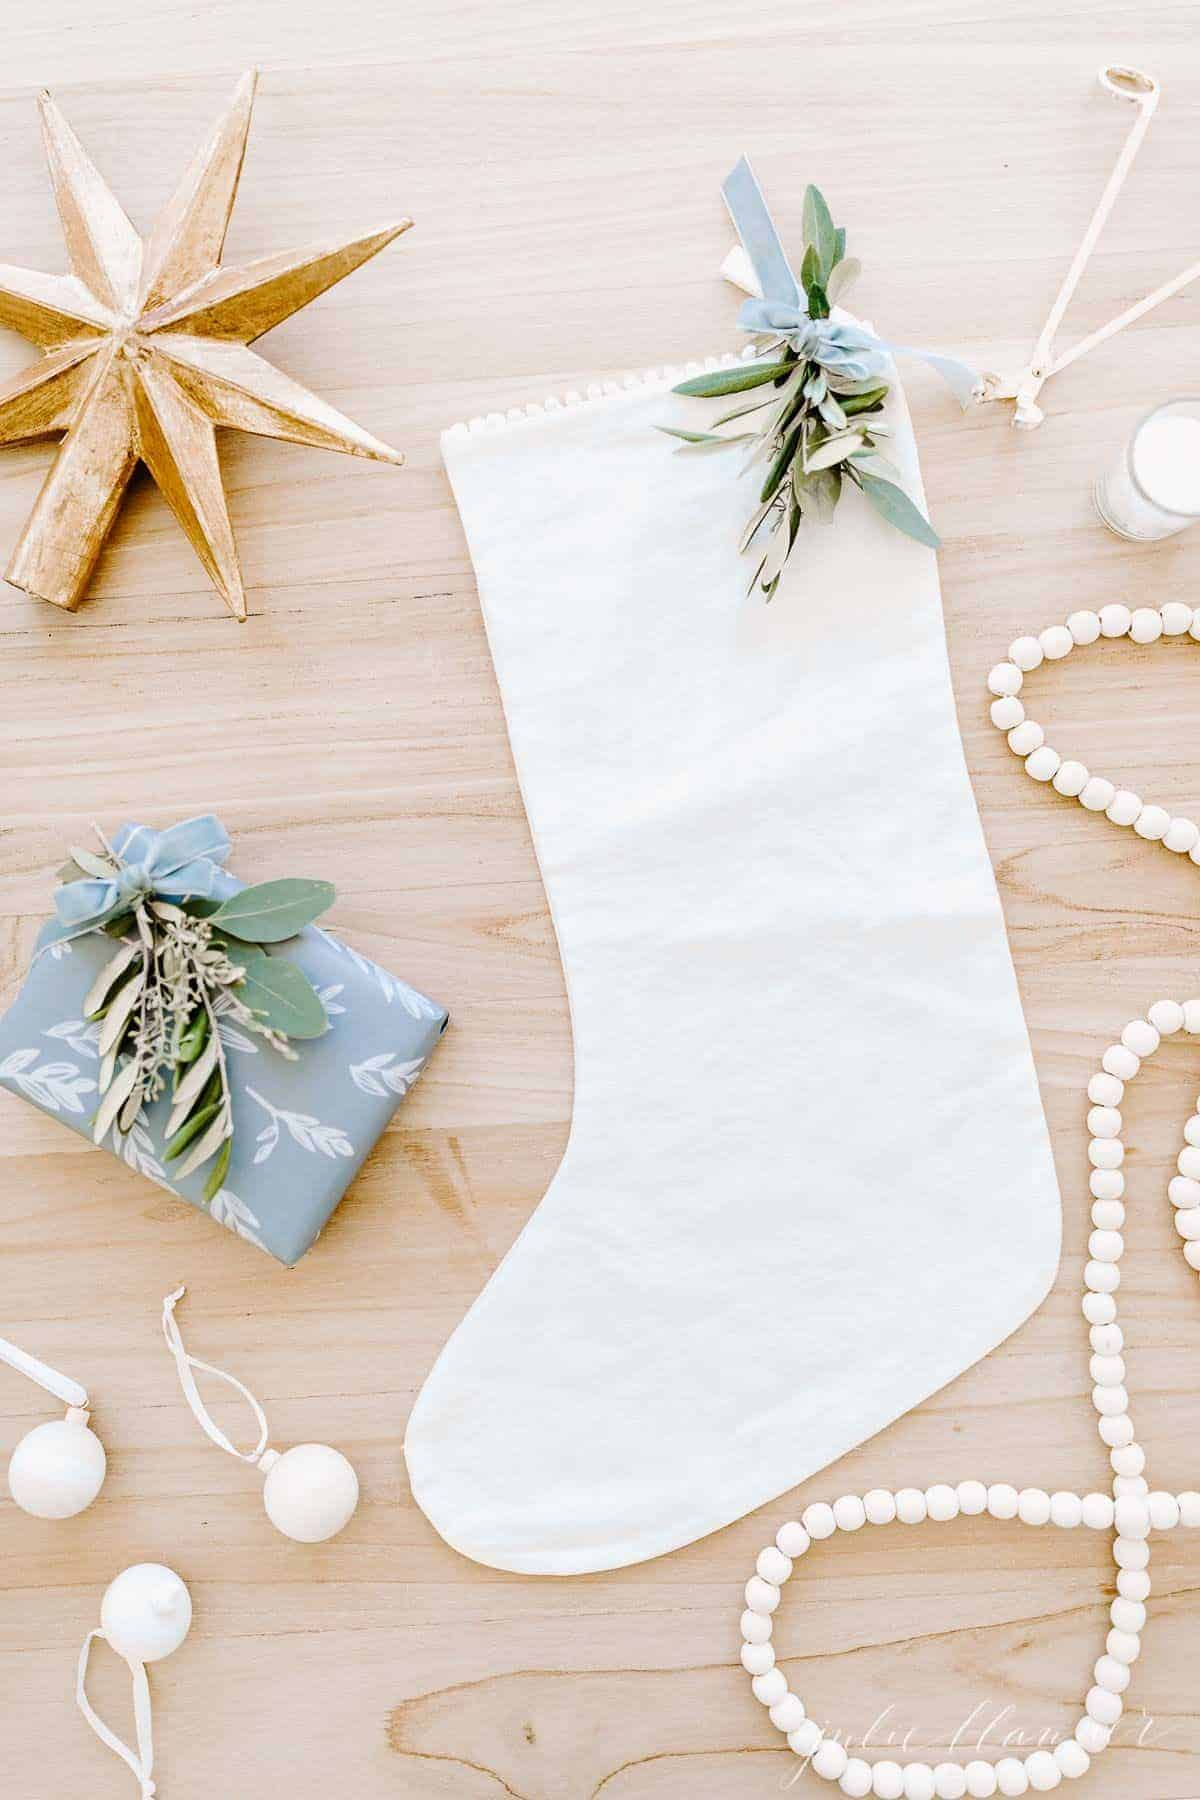 A wooden surface with a linen stocking, a gift card in a blue wrapped box, and wooden Christmas ornaments surrounding.